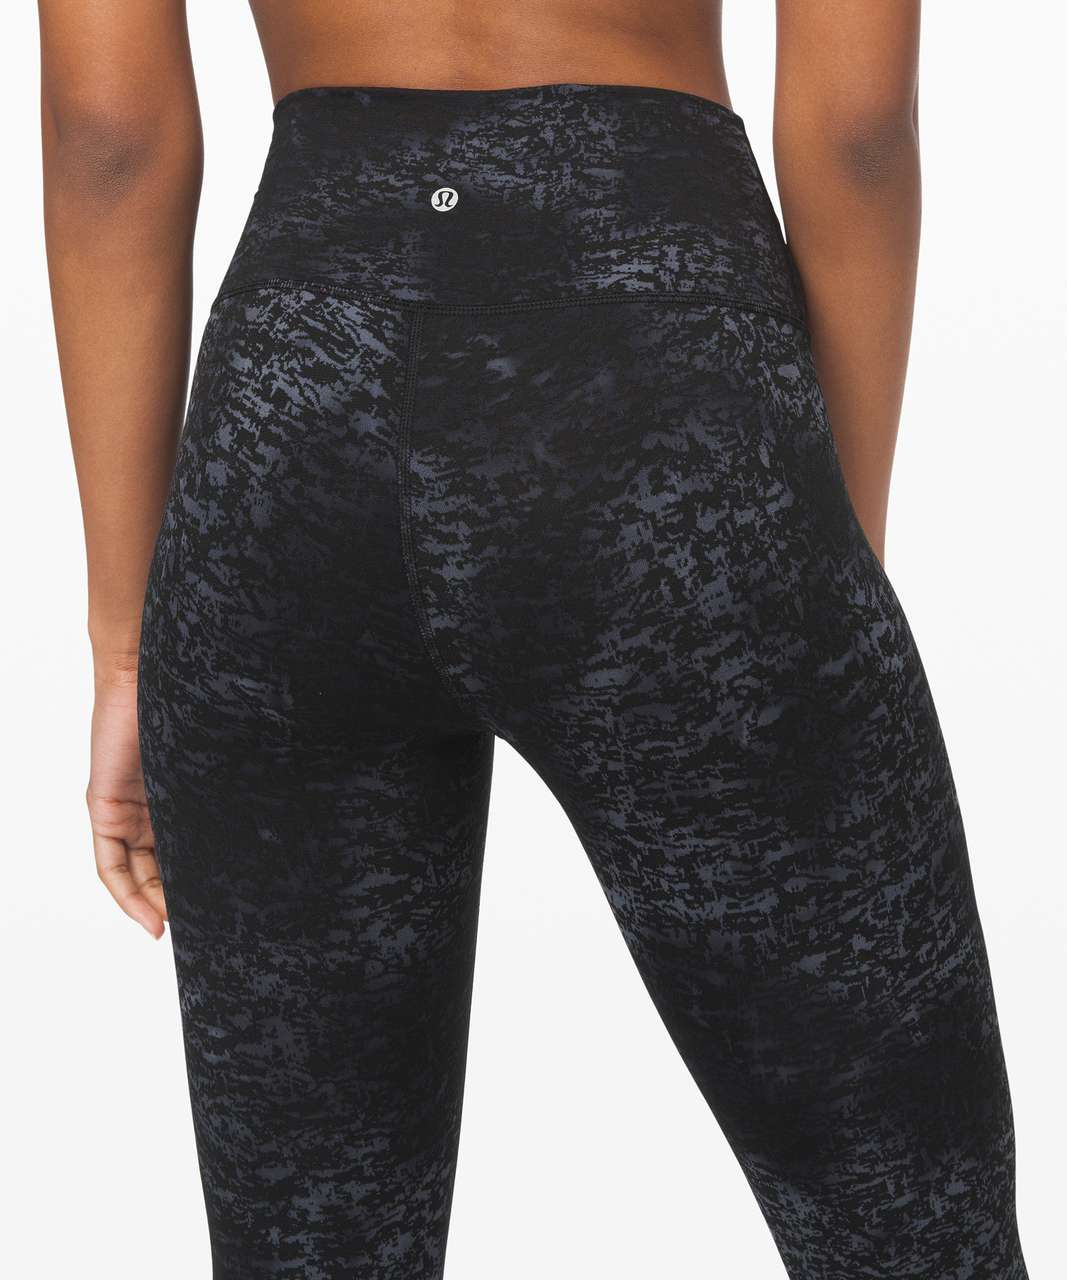 "Lululemon Wunder Under High-Rise Tight 28"" *Luxtreme - Untamed Jacquard Spray Dye Black Deep Coal"